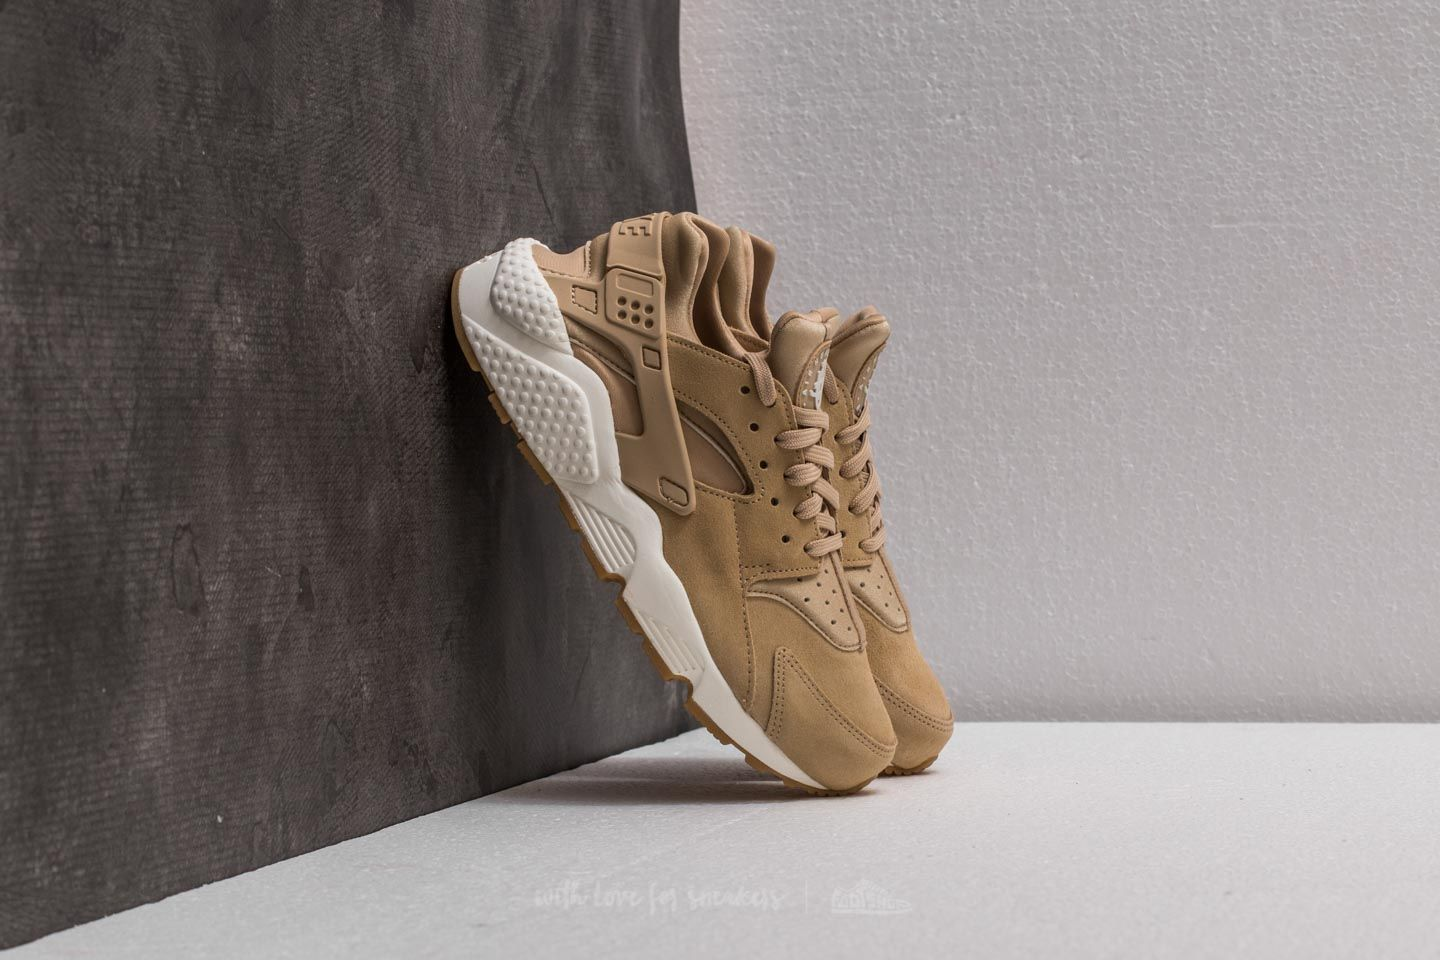 deca24419fc8 Nike Wmns Air Huarache Run SD Mushroom  Light Bone-Sail